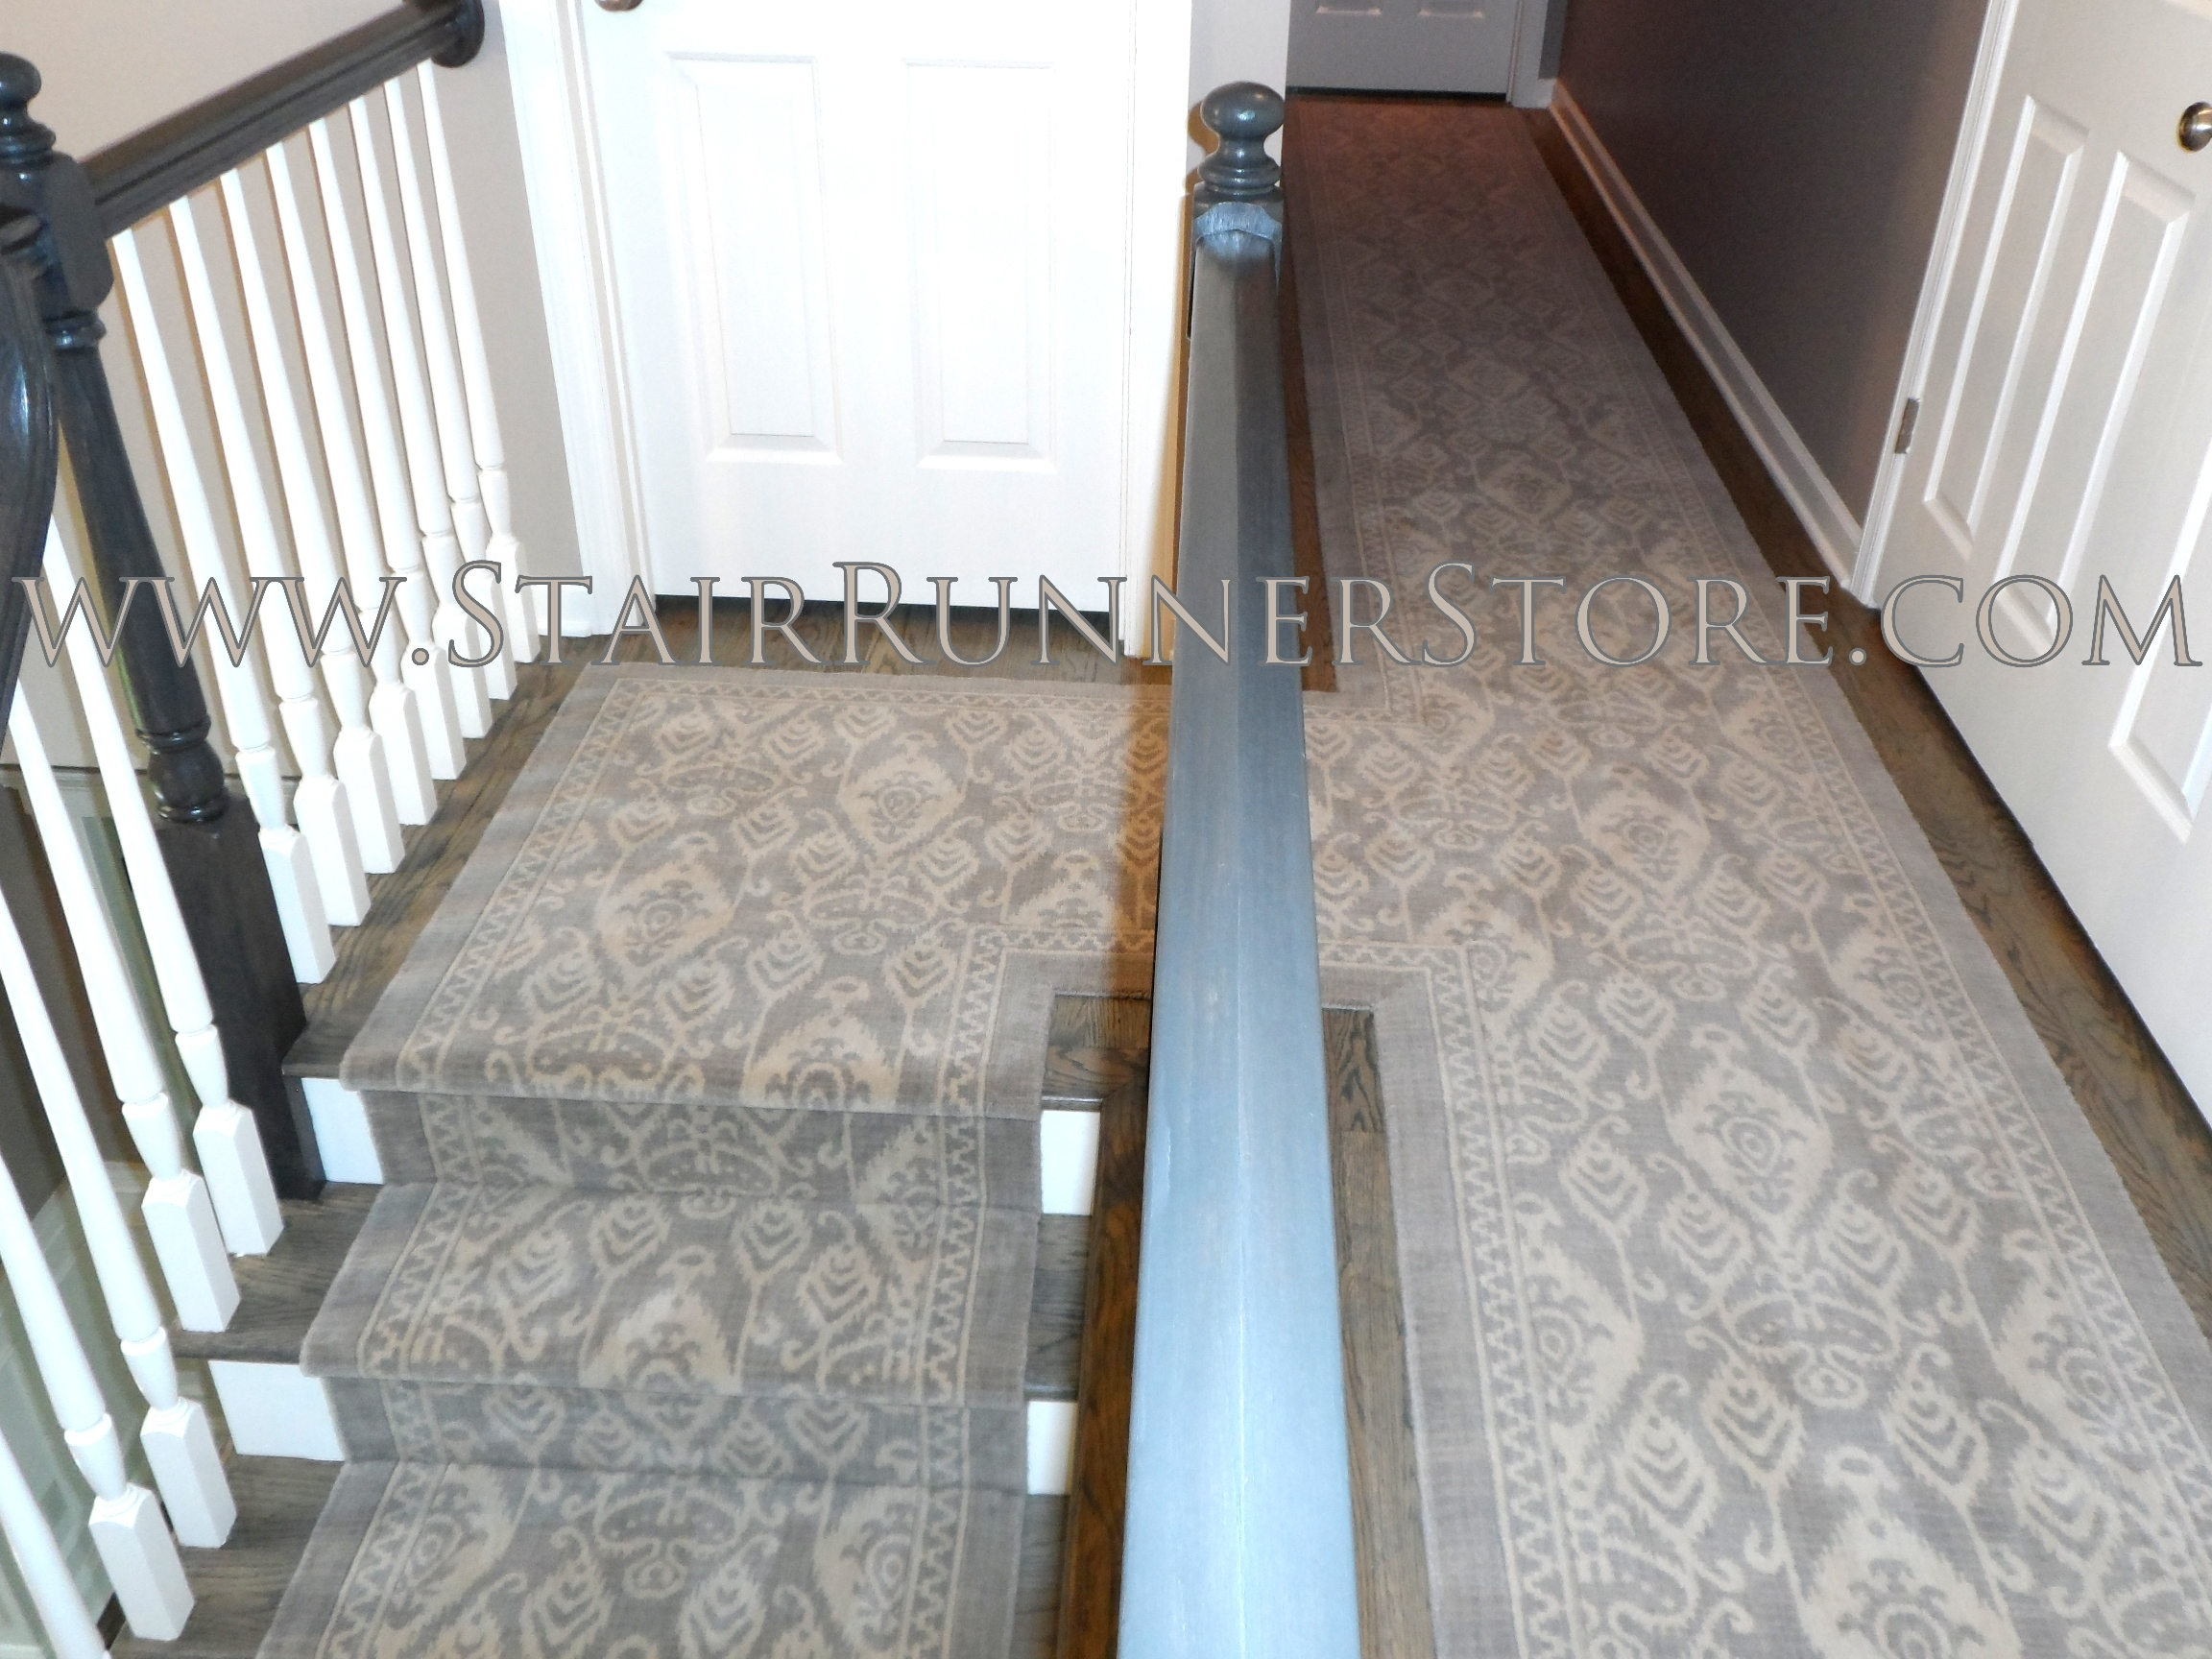 20 Best Of Carpet Runners For Stairs And Hallways